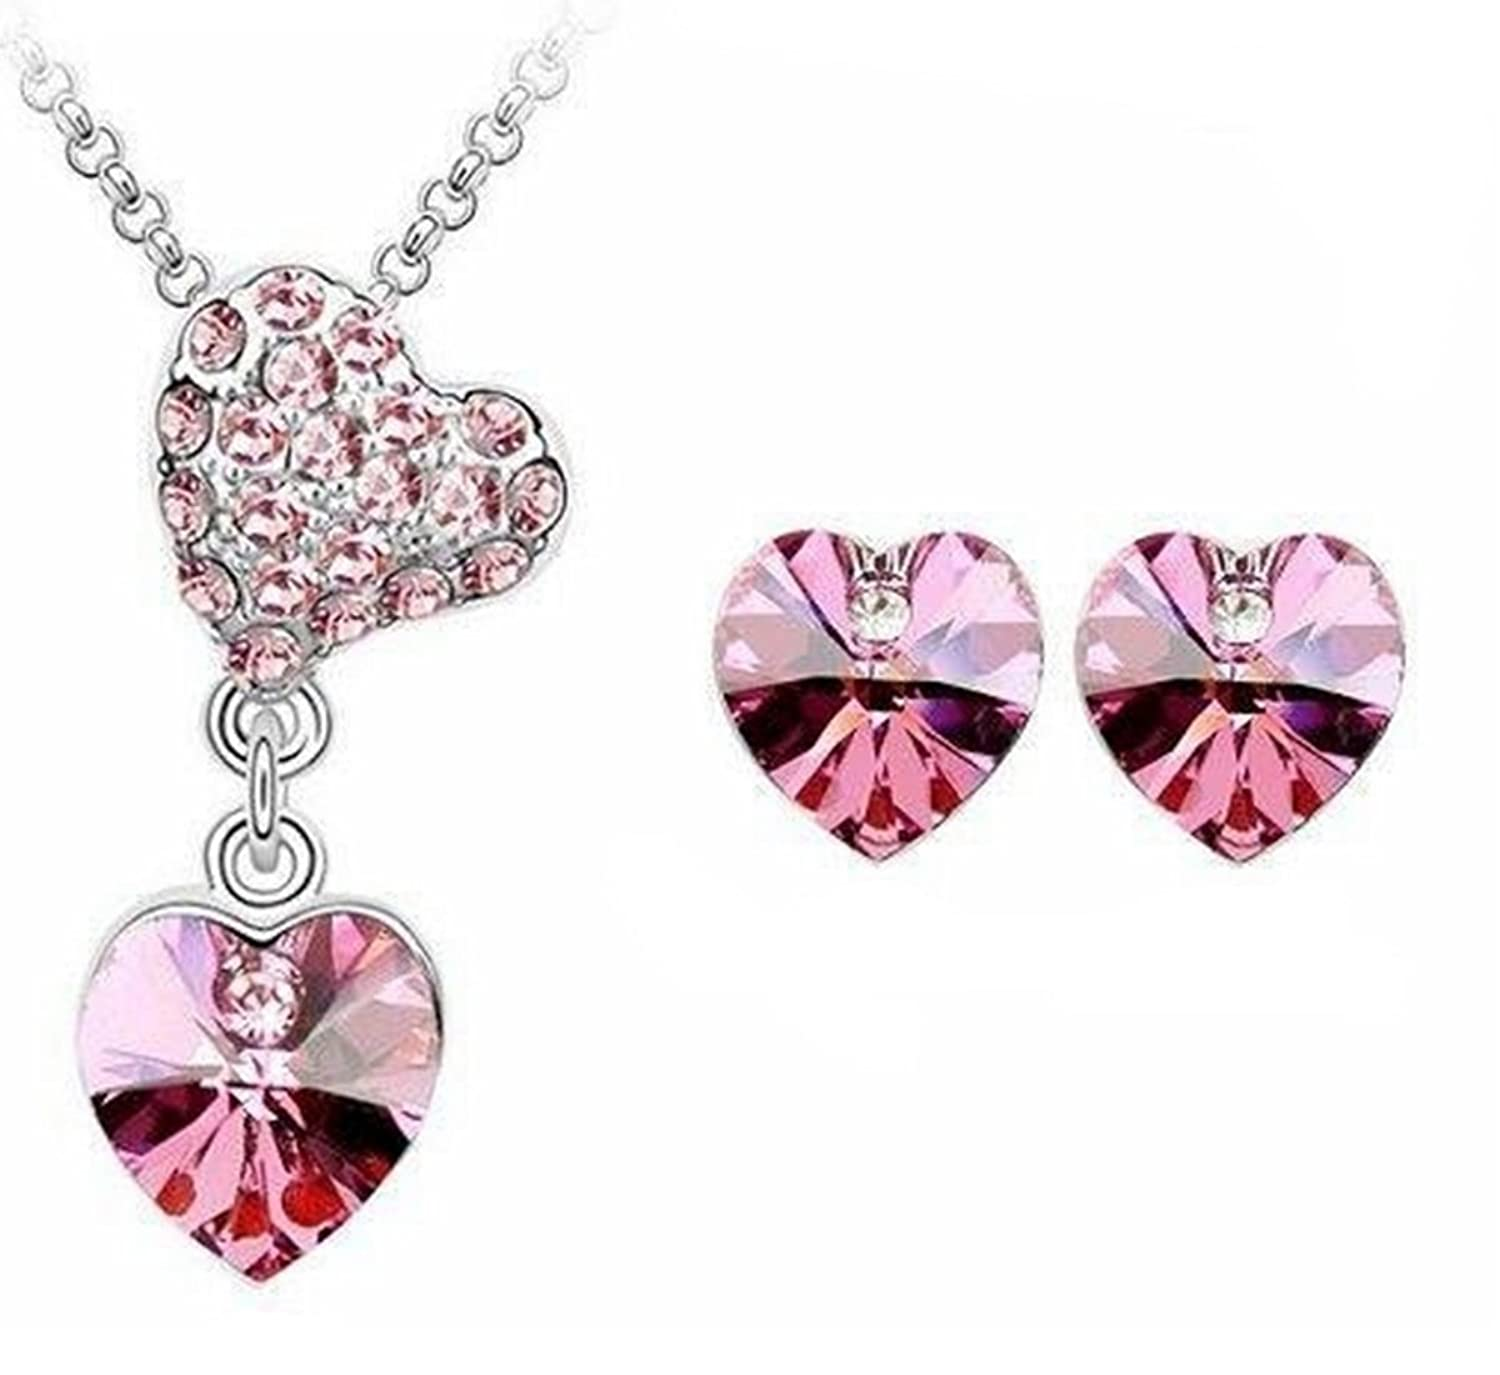 18ct Gold Plated Crystal Jewelry Set embellished with Crystals from Swarovski! Pink Heart Drop Dangle Necklace & Earring Set. FREE Chain!